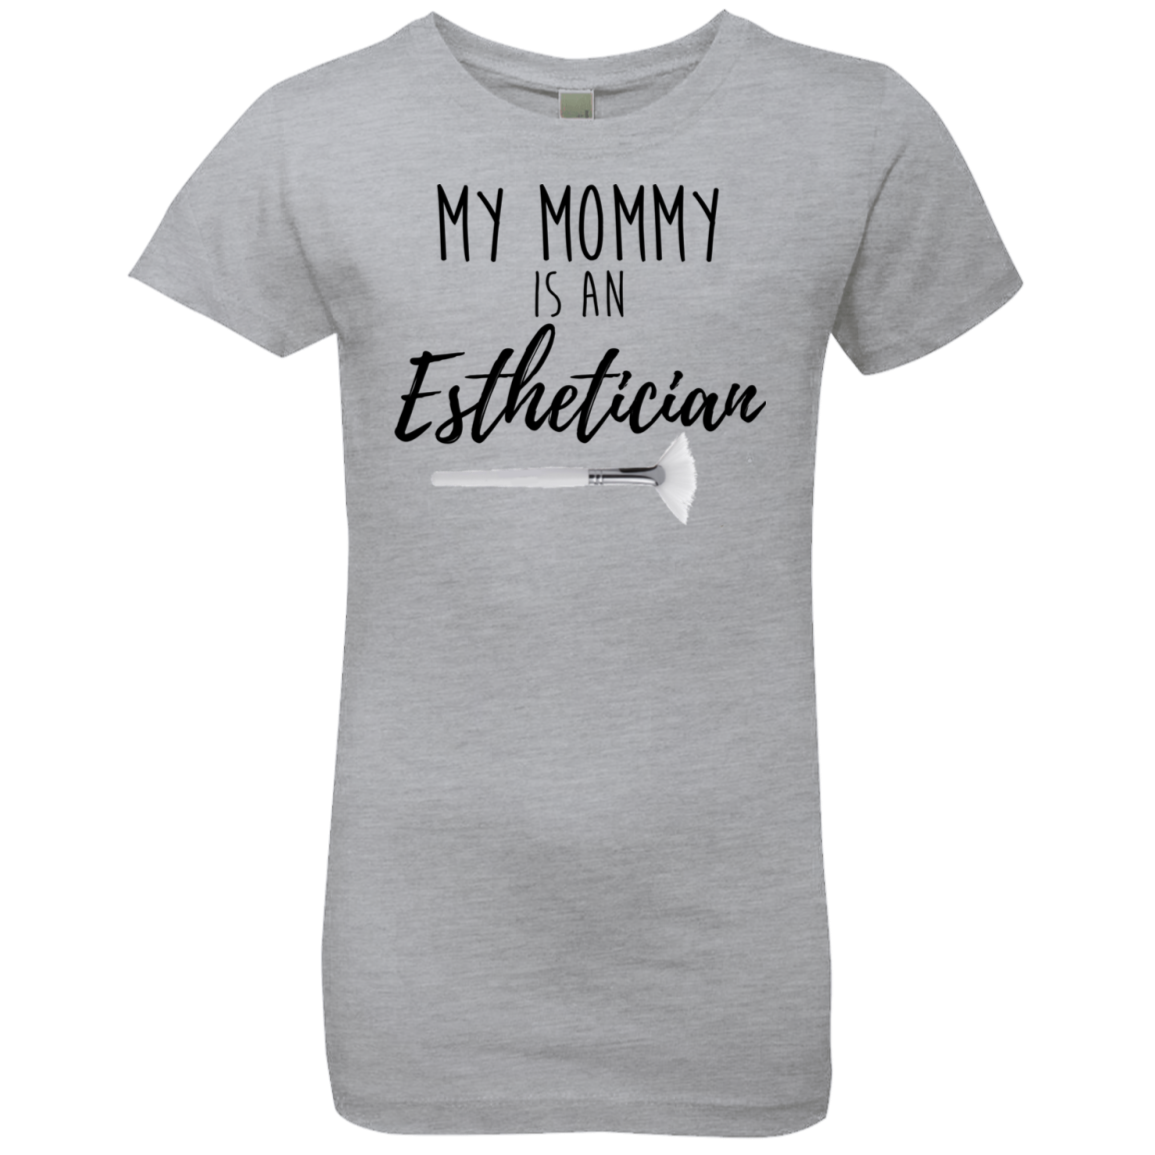 My Mommy is an Esthetician (Youth Shirt)